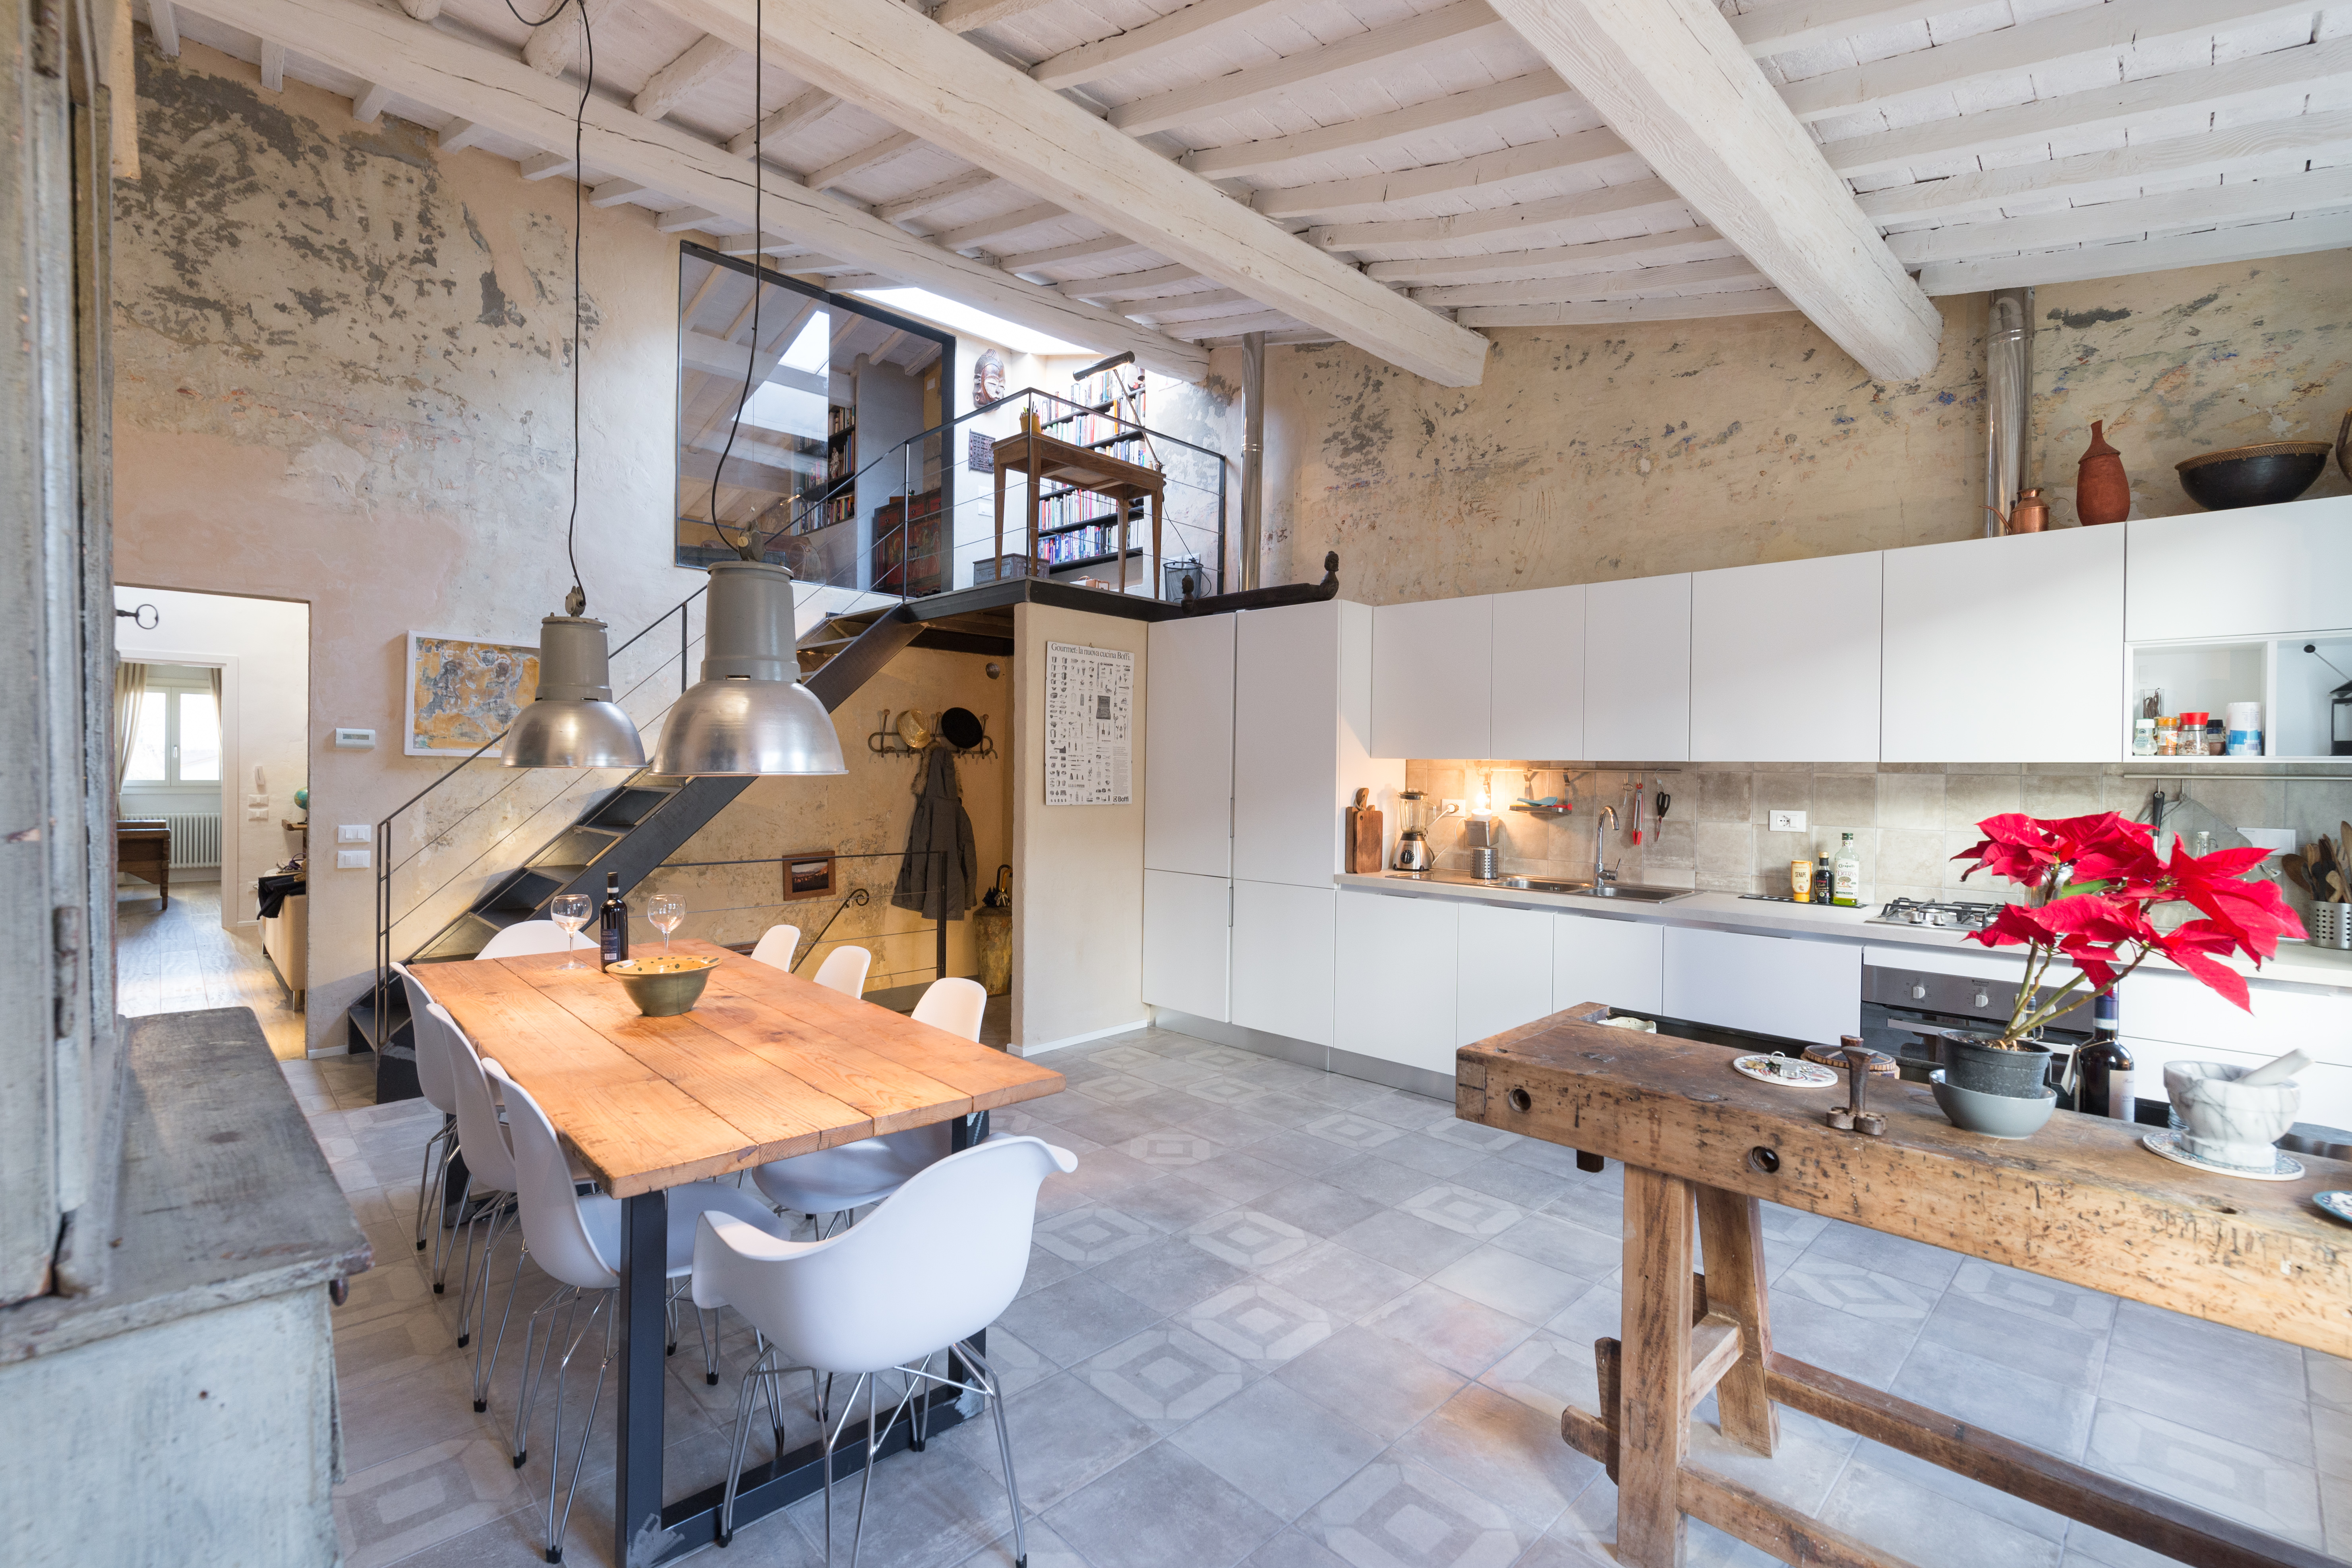 Unique 100 Sqm Designer Flat In Oltrarno Lofts For Rent In Florence Toscana Italy